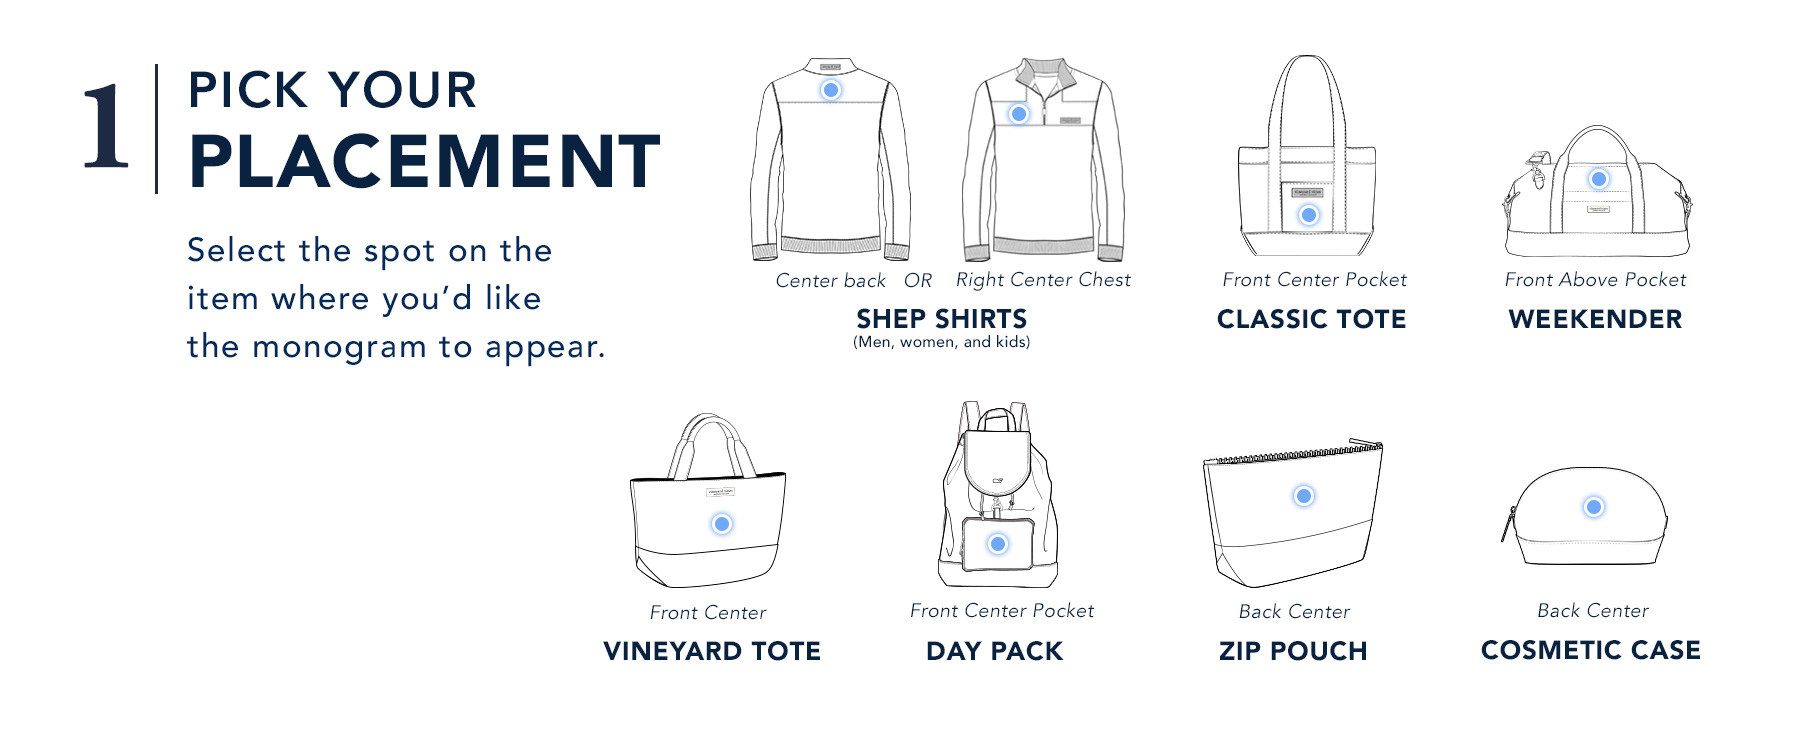 1. Pick your placement - Select the spot on the item wher you'd like the monogram to appear.